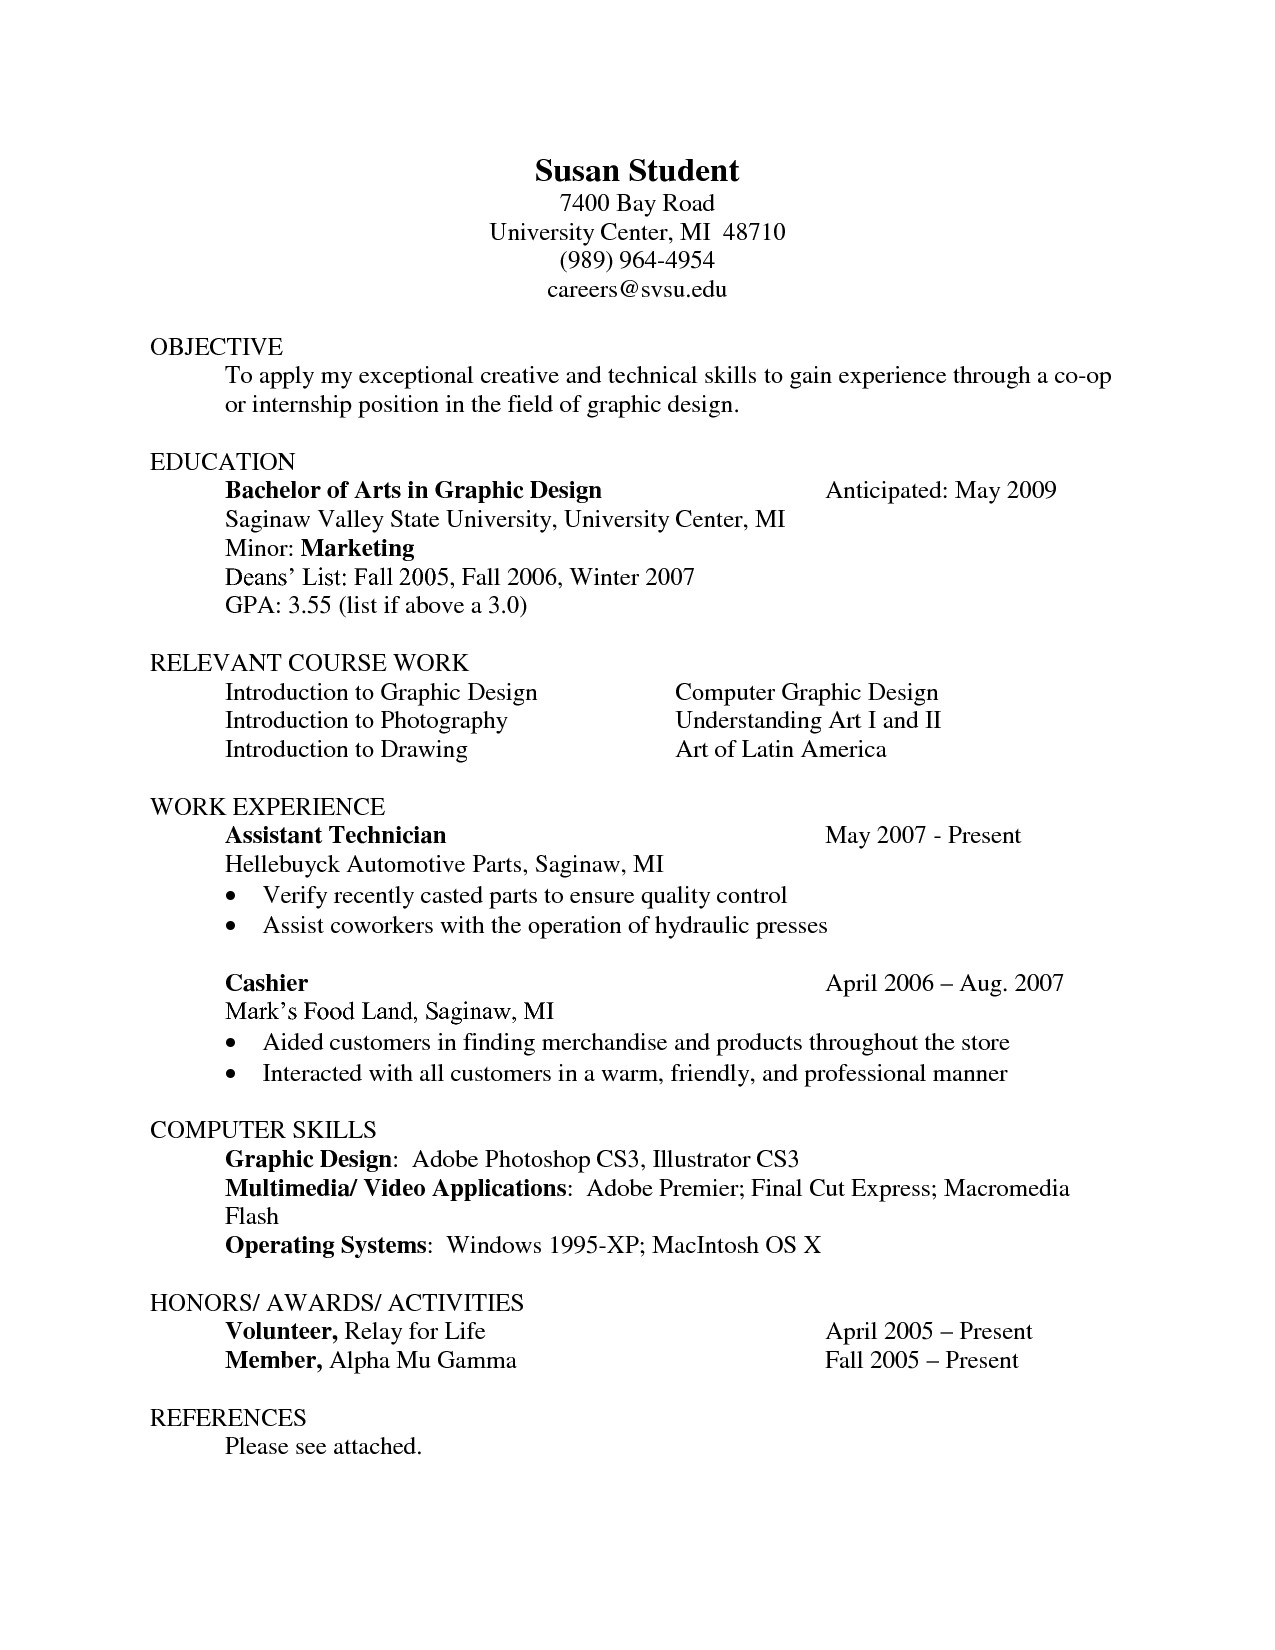 Resume Templates References